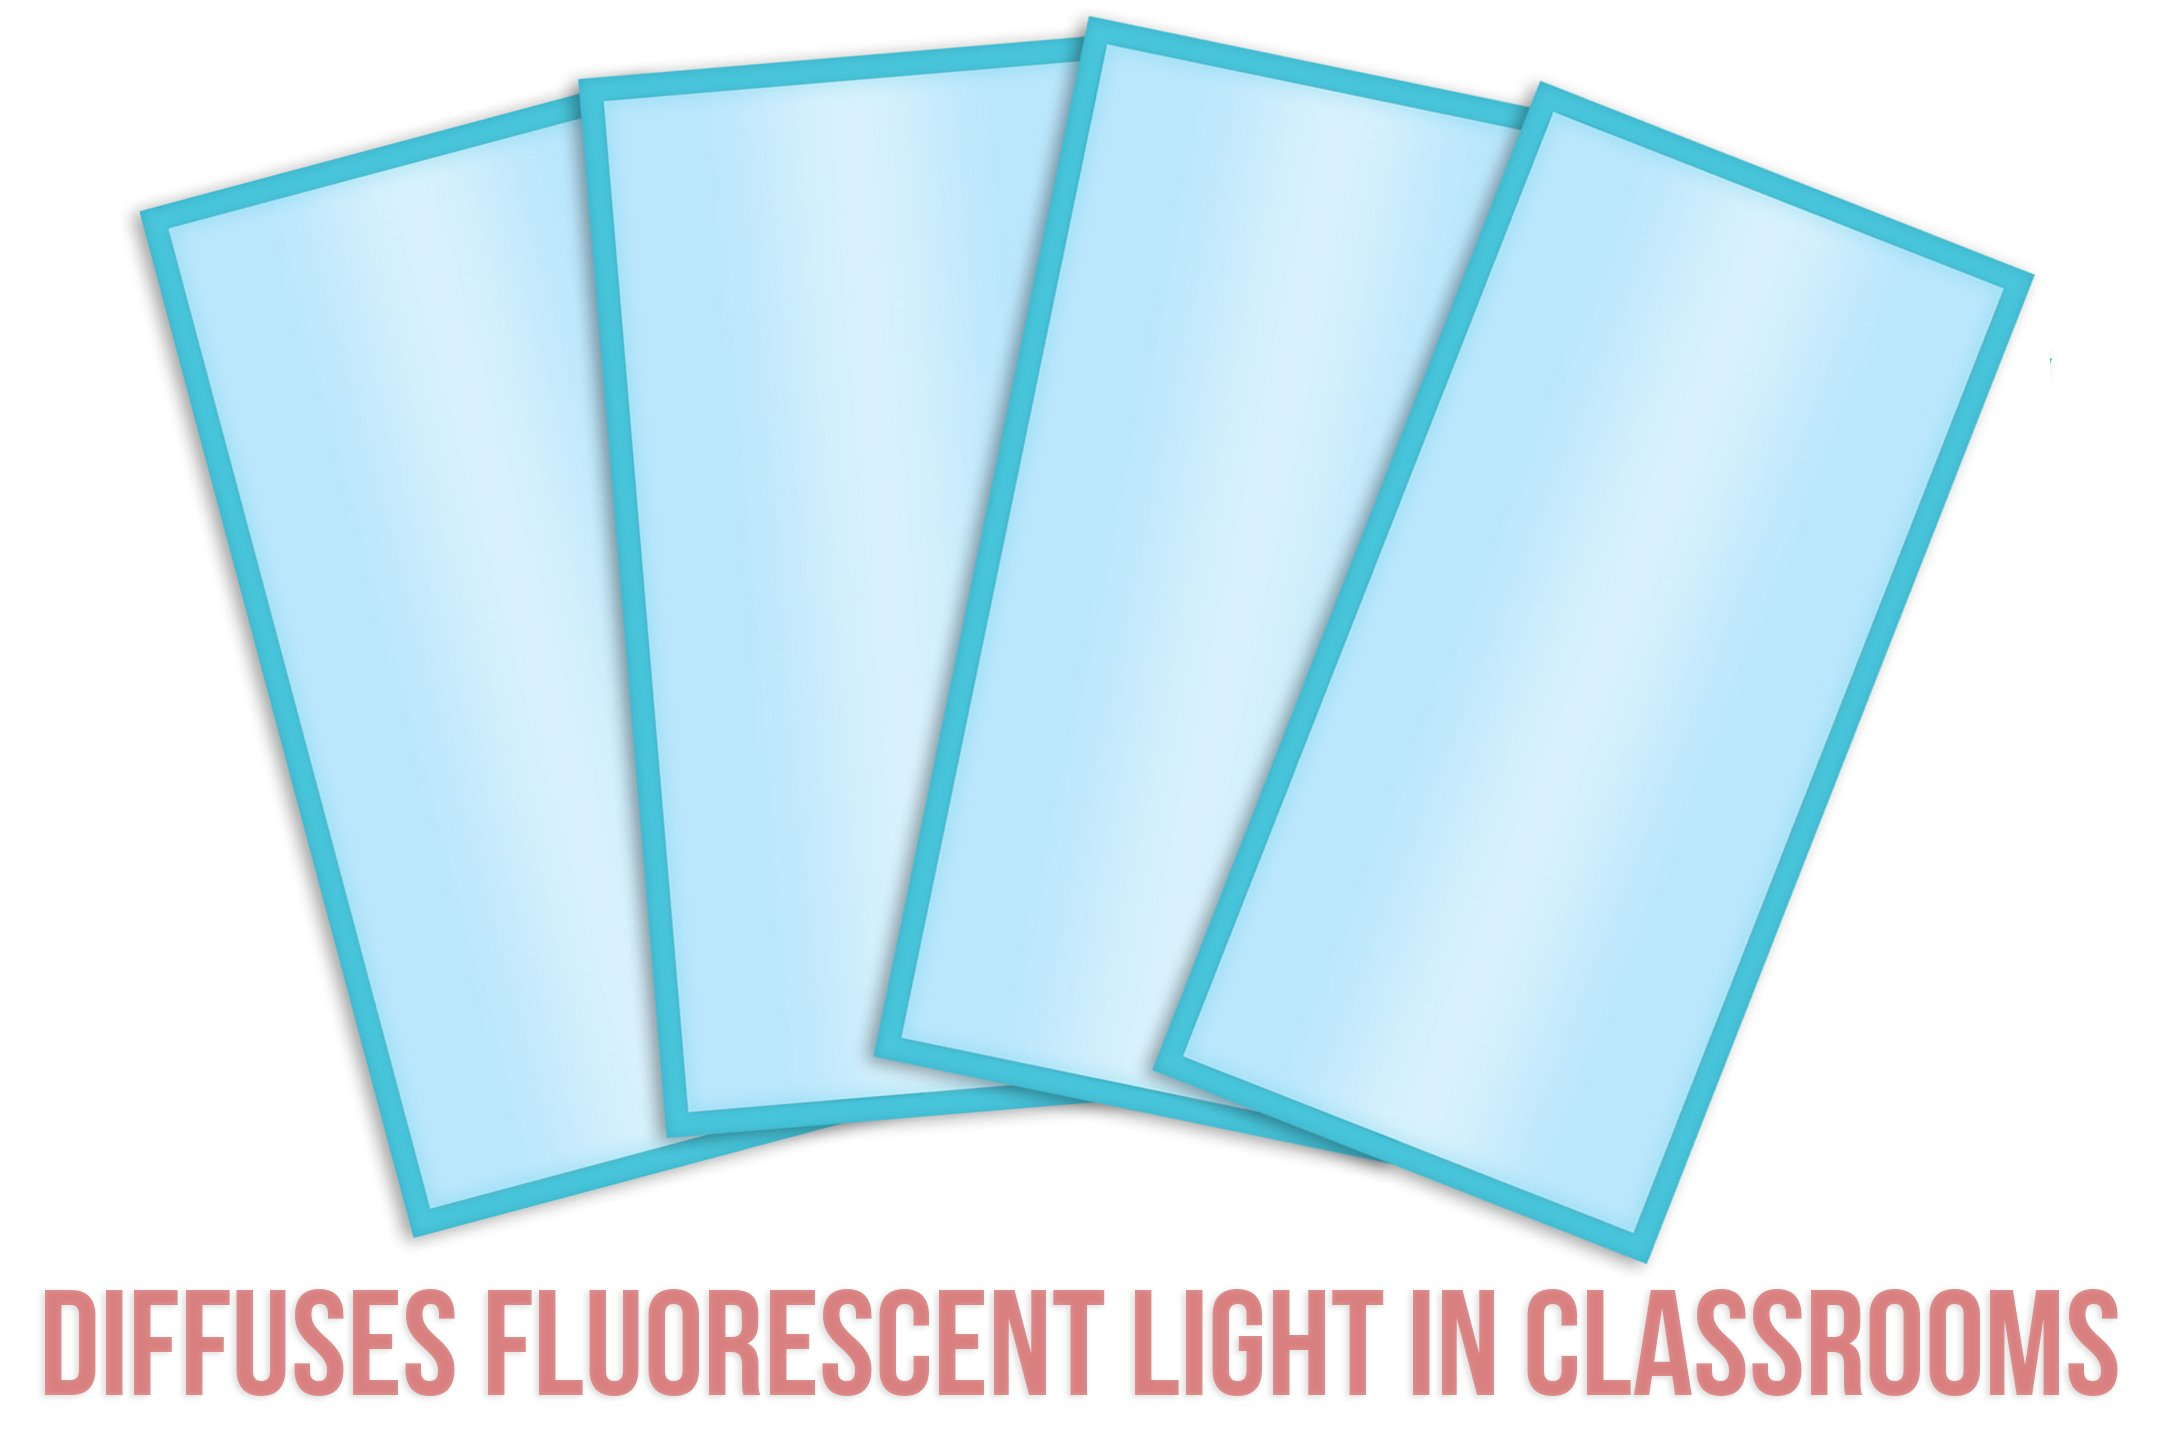 Fluorescent Light Covers Cozy Shades - Softening Light Filter, Light Diffuser for Game Room, Classroom, Office, Kids Bedrooms, or Hospital Room 48 x 24 inches - Set of 4 - Tranquil Sky Blue by Posh Peanut (Image #3)